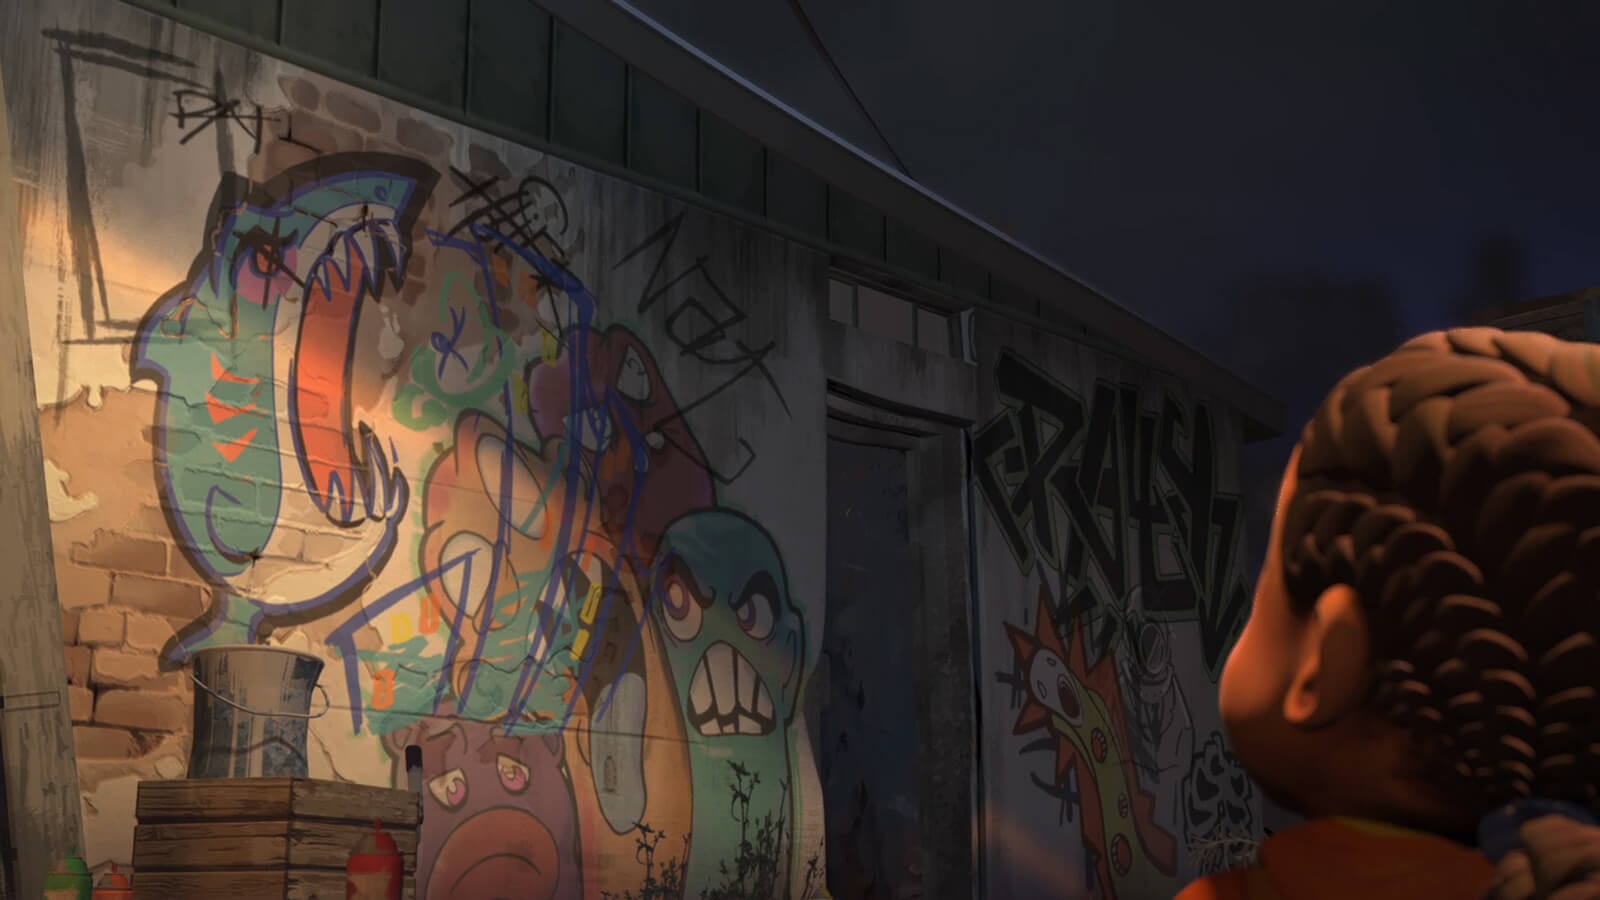 A young girl from behind looking at a dimly lit exterior wall covered in colorful graffiti